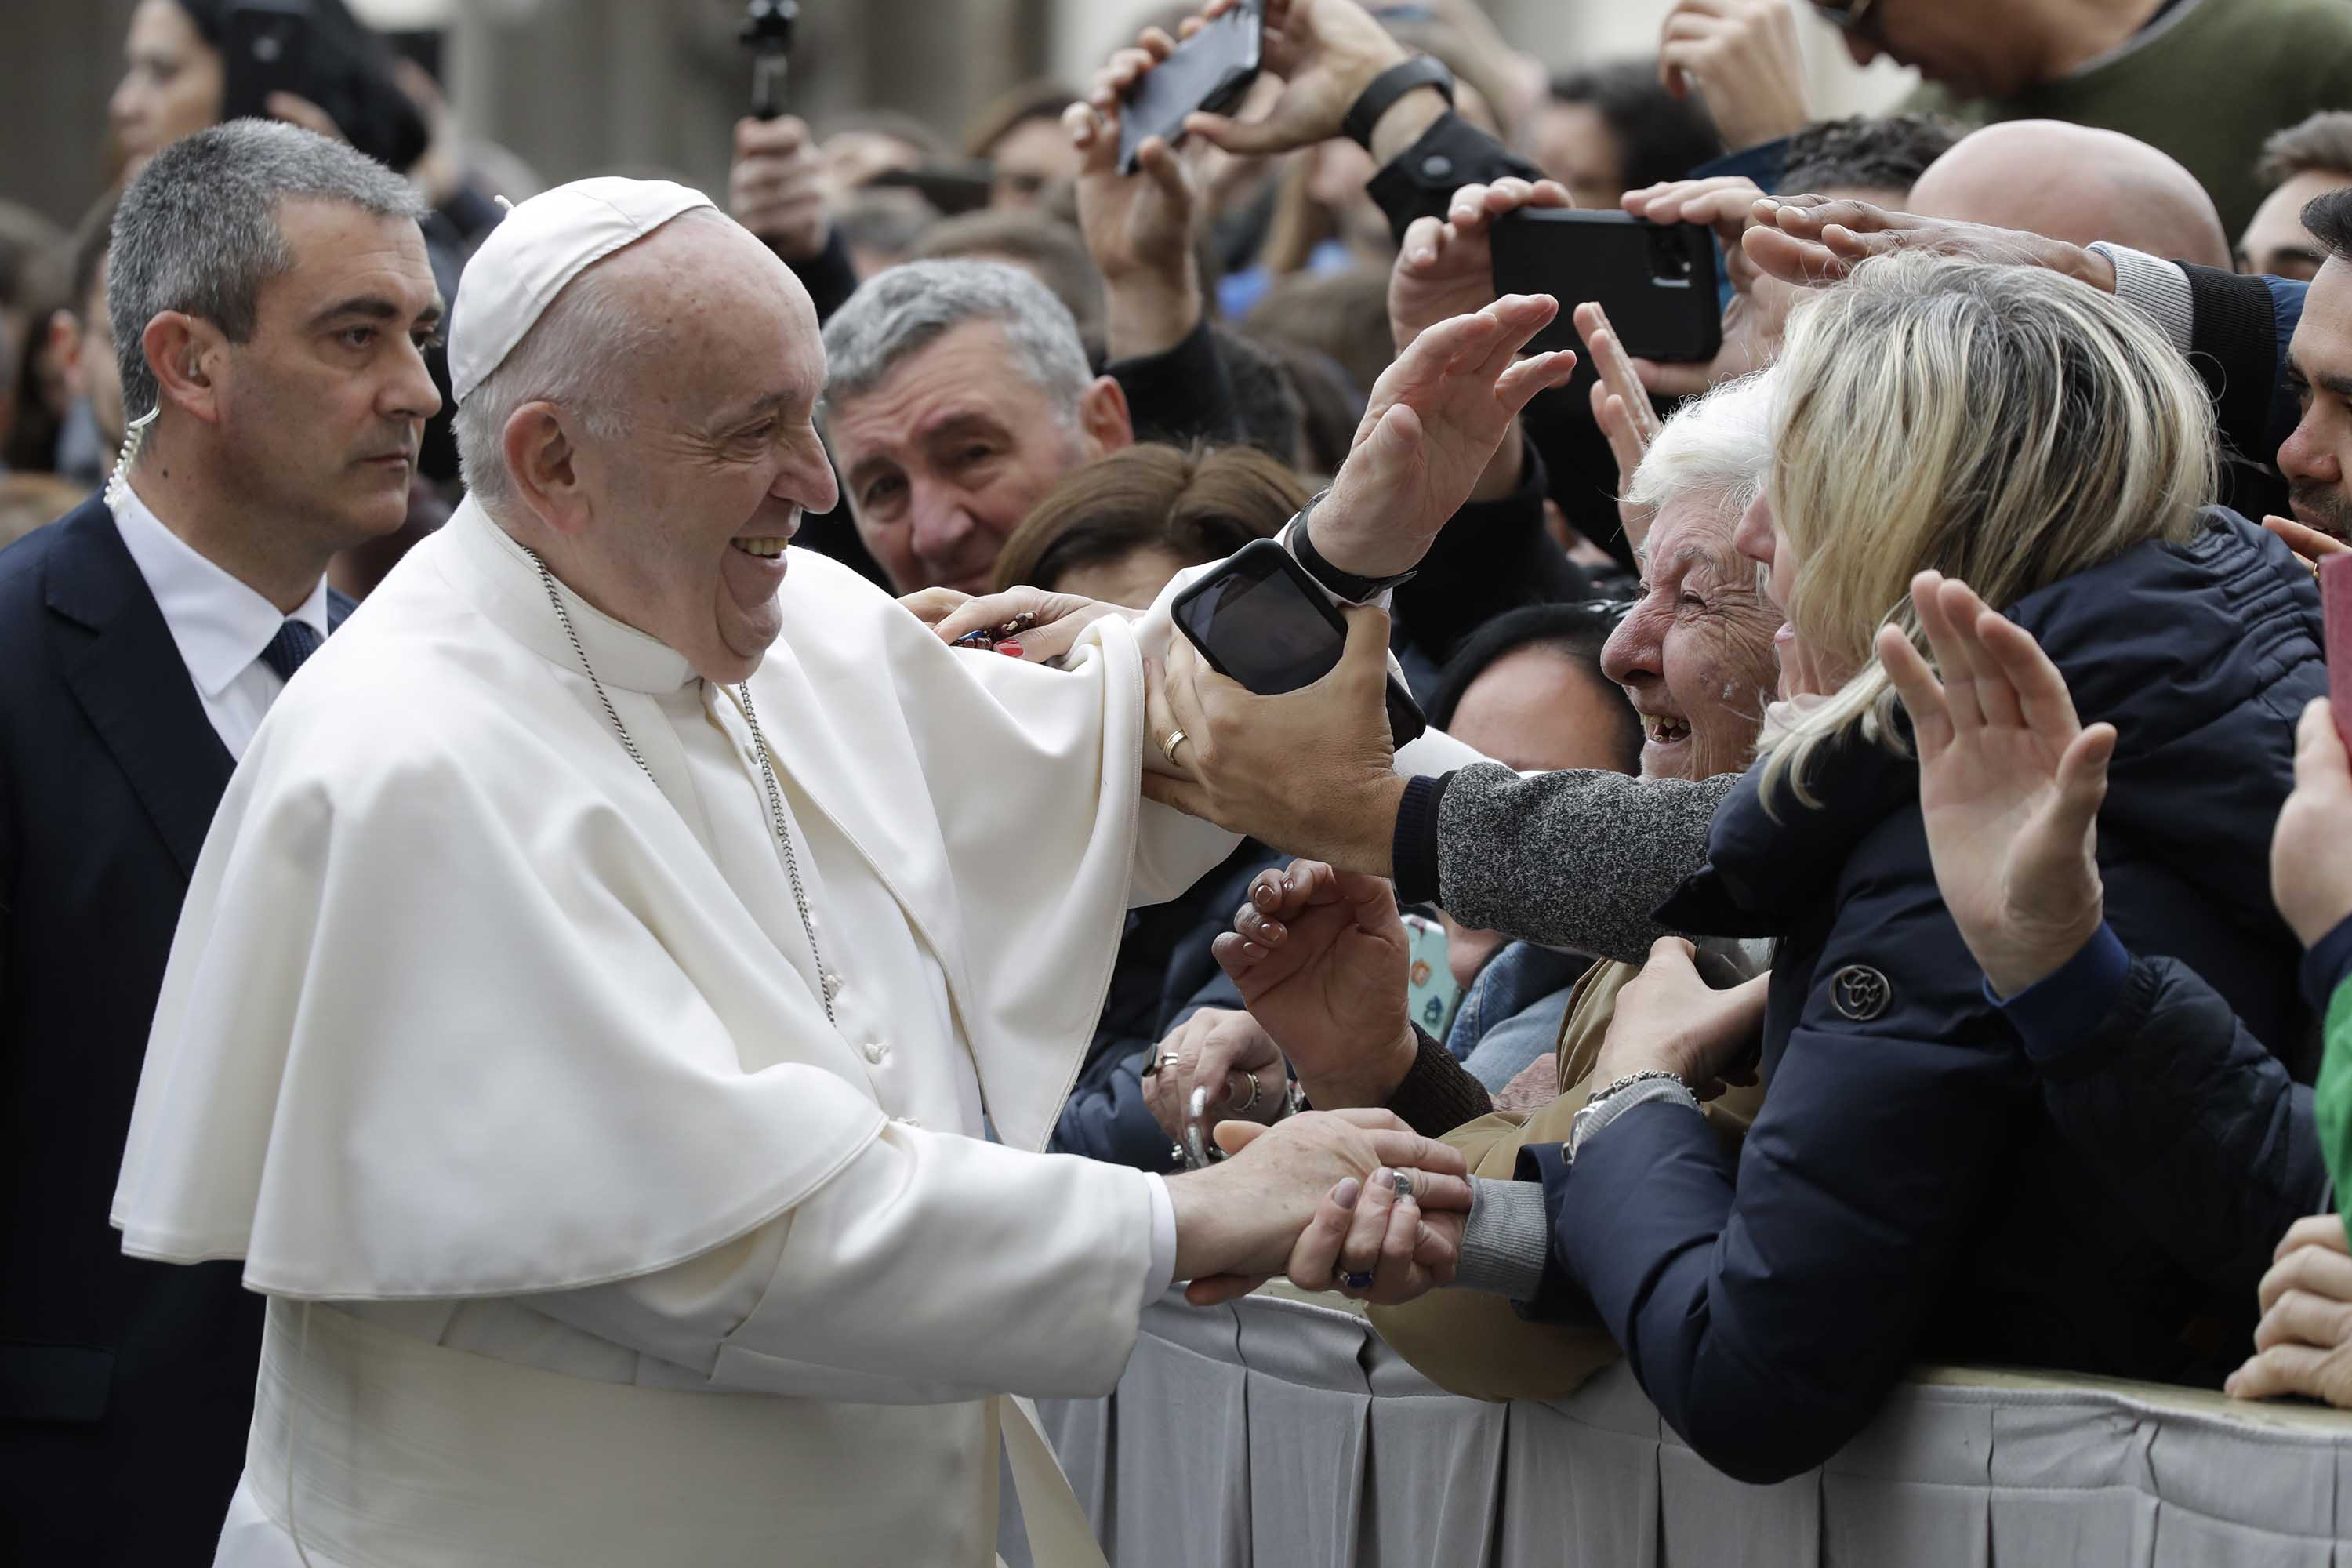 Pope Francis greets people in St. Peter's Square at the Vatican on Wednesday.